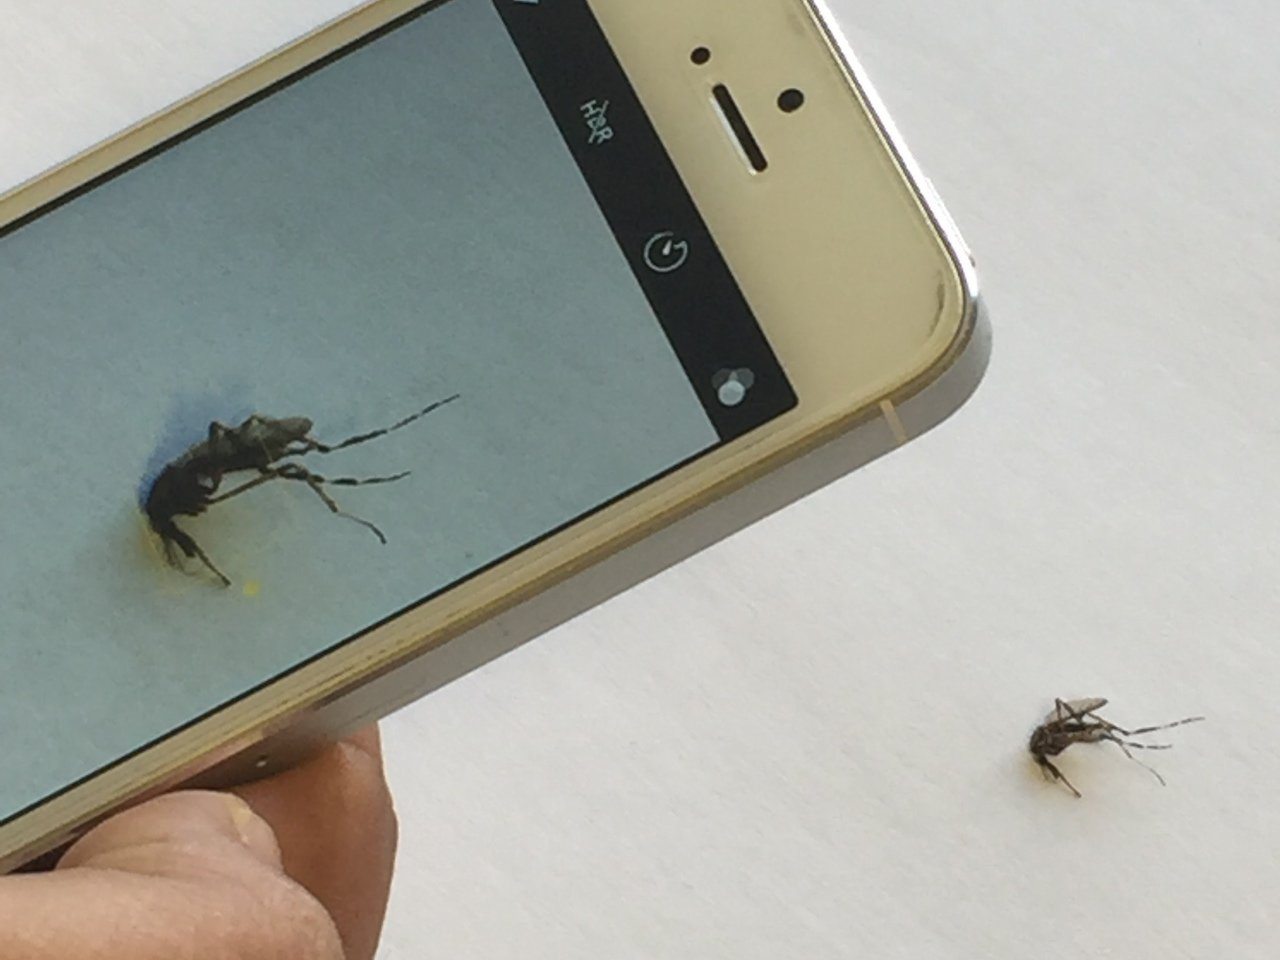 Identifying Mosquito Species Using Smartphone Cameras